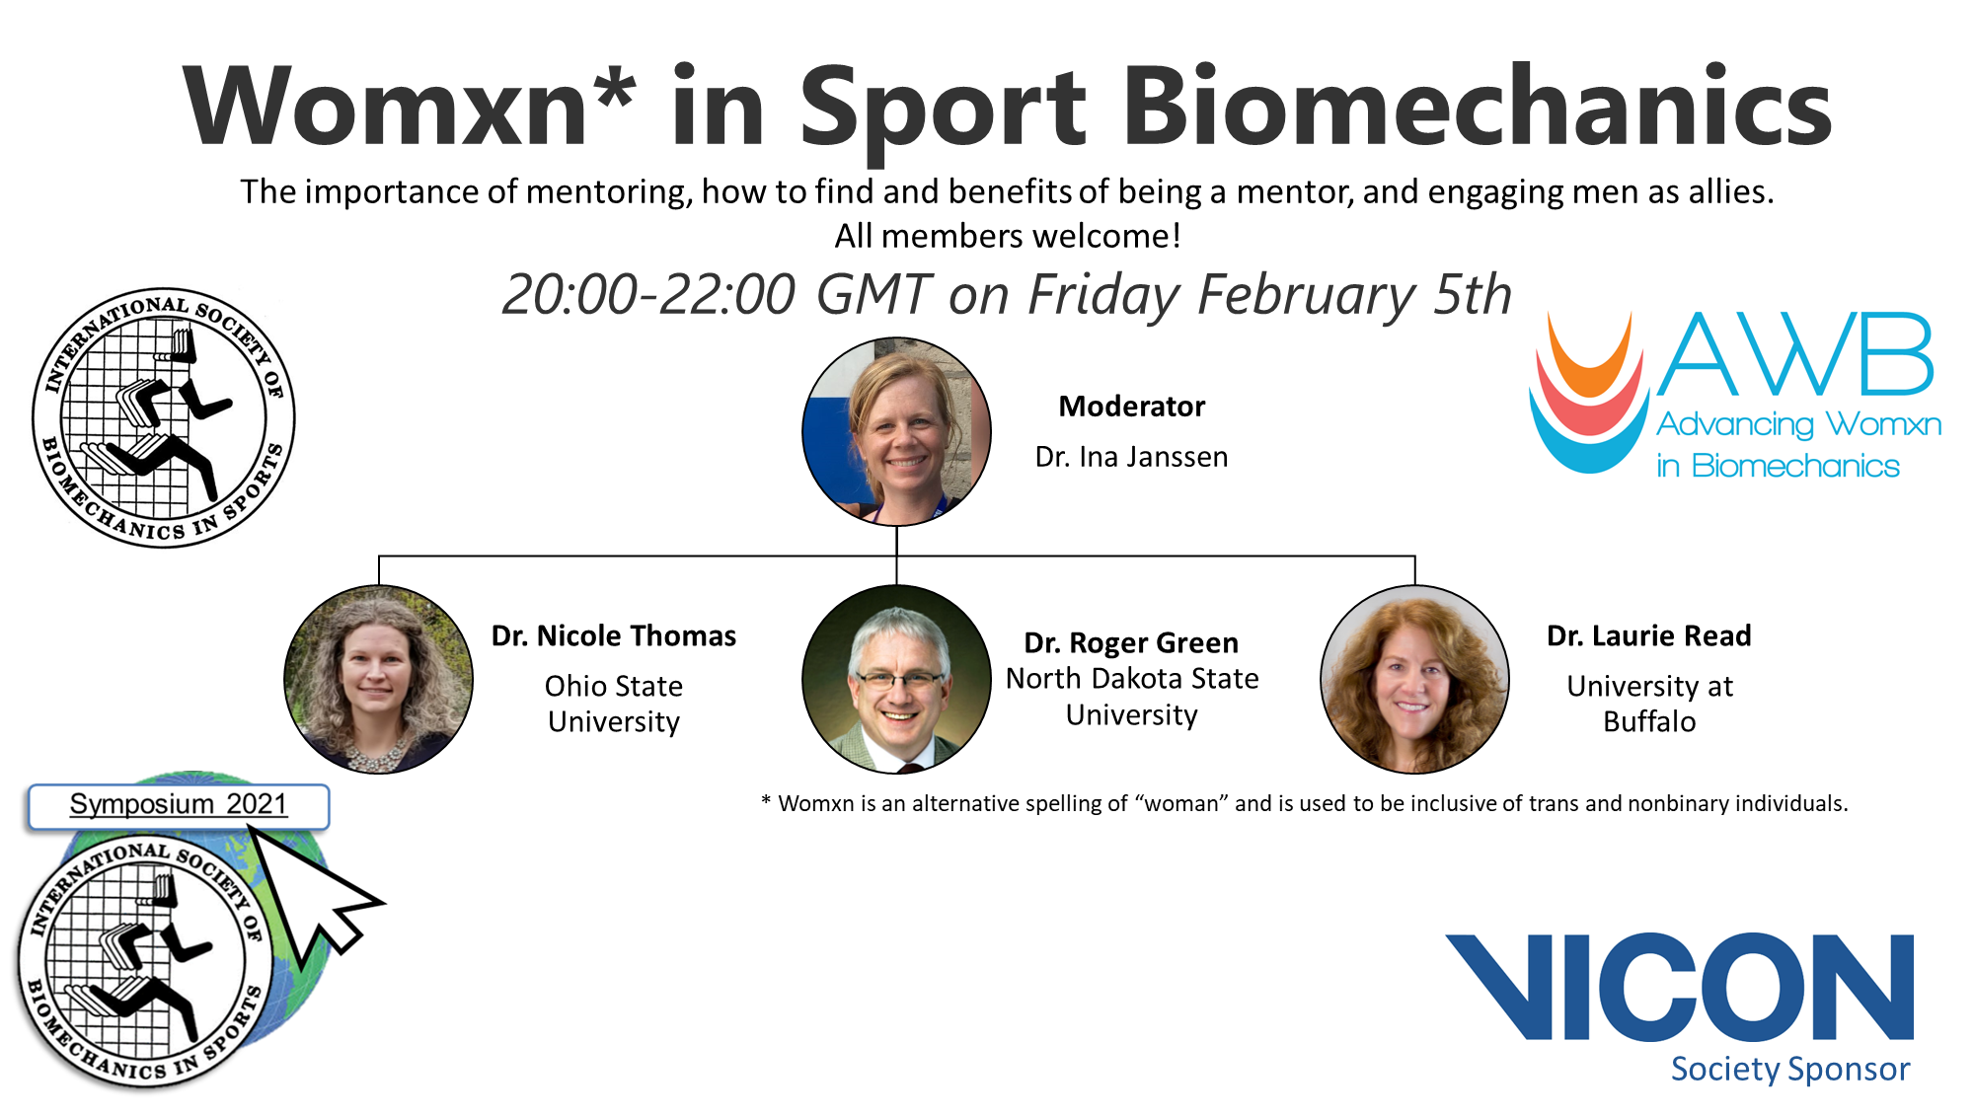 Womxn in Sport Biomechanics. Mentoring. 20:00-22:00 GMT on Friday February 5th. Moderator Dr. Ina Janssen. Speakers: Dr Nicole Thomas Ohio State University,  Dr. Roger Green North Dakota State University, Dr Laurie Read University at Buffalo.